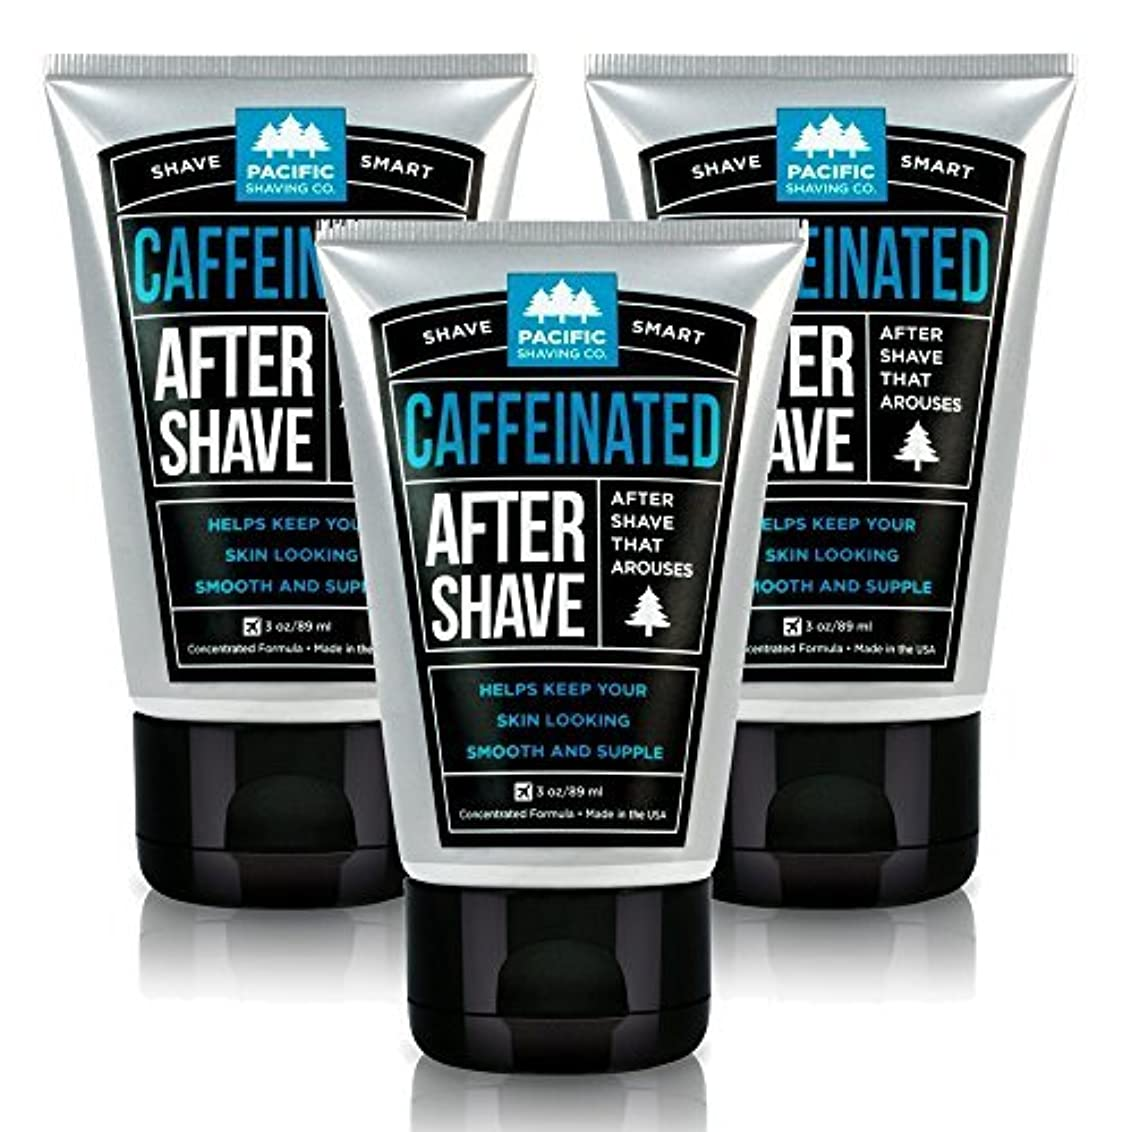 宇宙のきらめく敵意Pacific Shaving Company Caffeinated Aftershave 3 Pack [並行輸入品]